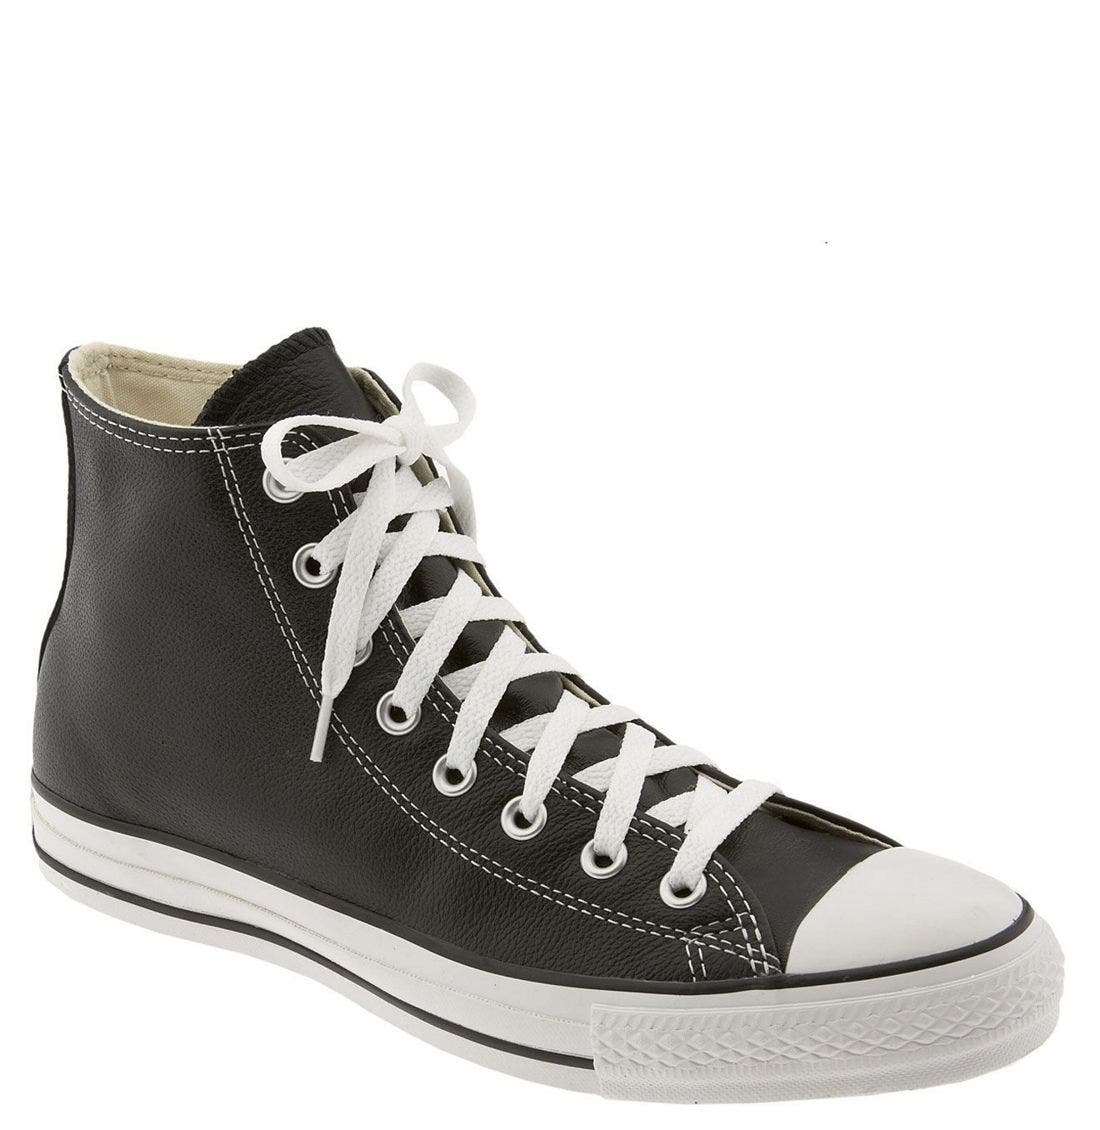 Alternate Image 1 Selected - Converse Chuck Taylor® All Star® Leather High Top Sneaker (Men)